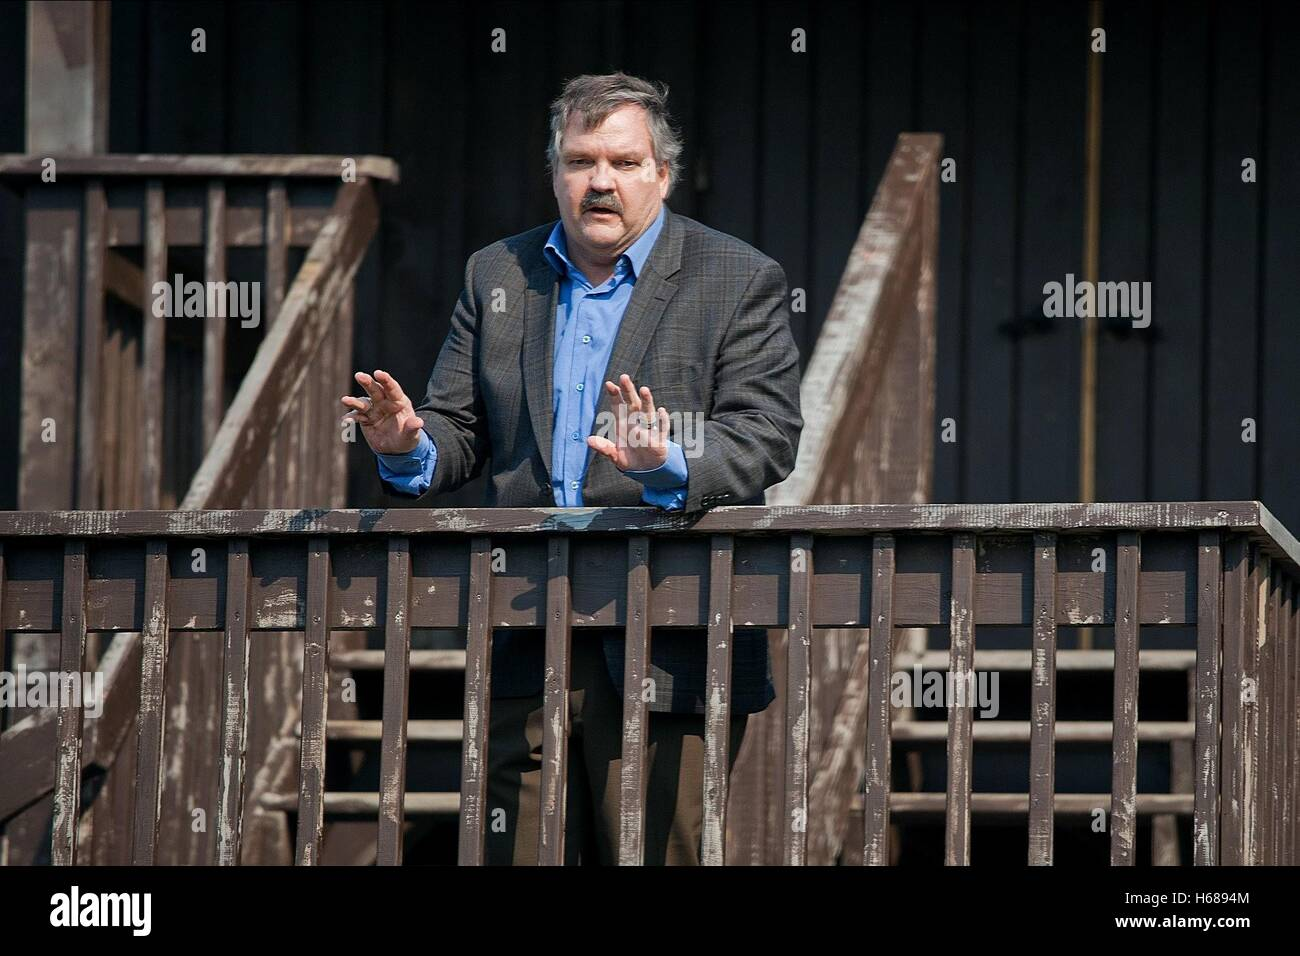 MEAT LOAF STAGE FRIGHT (2014) - Stock Image